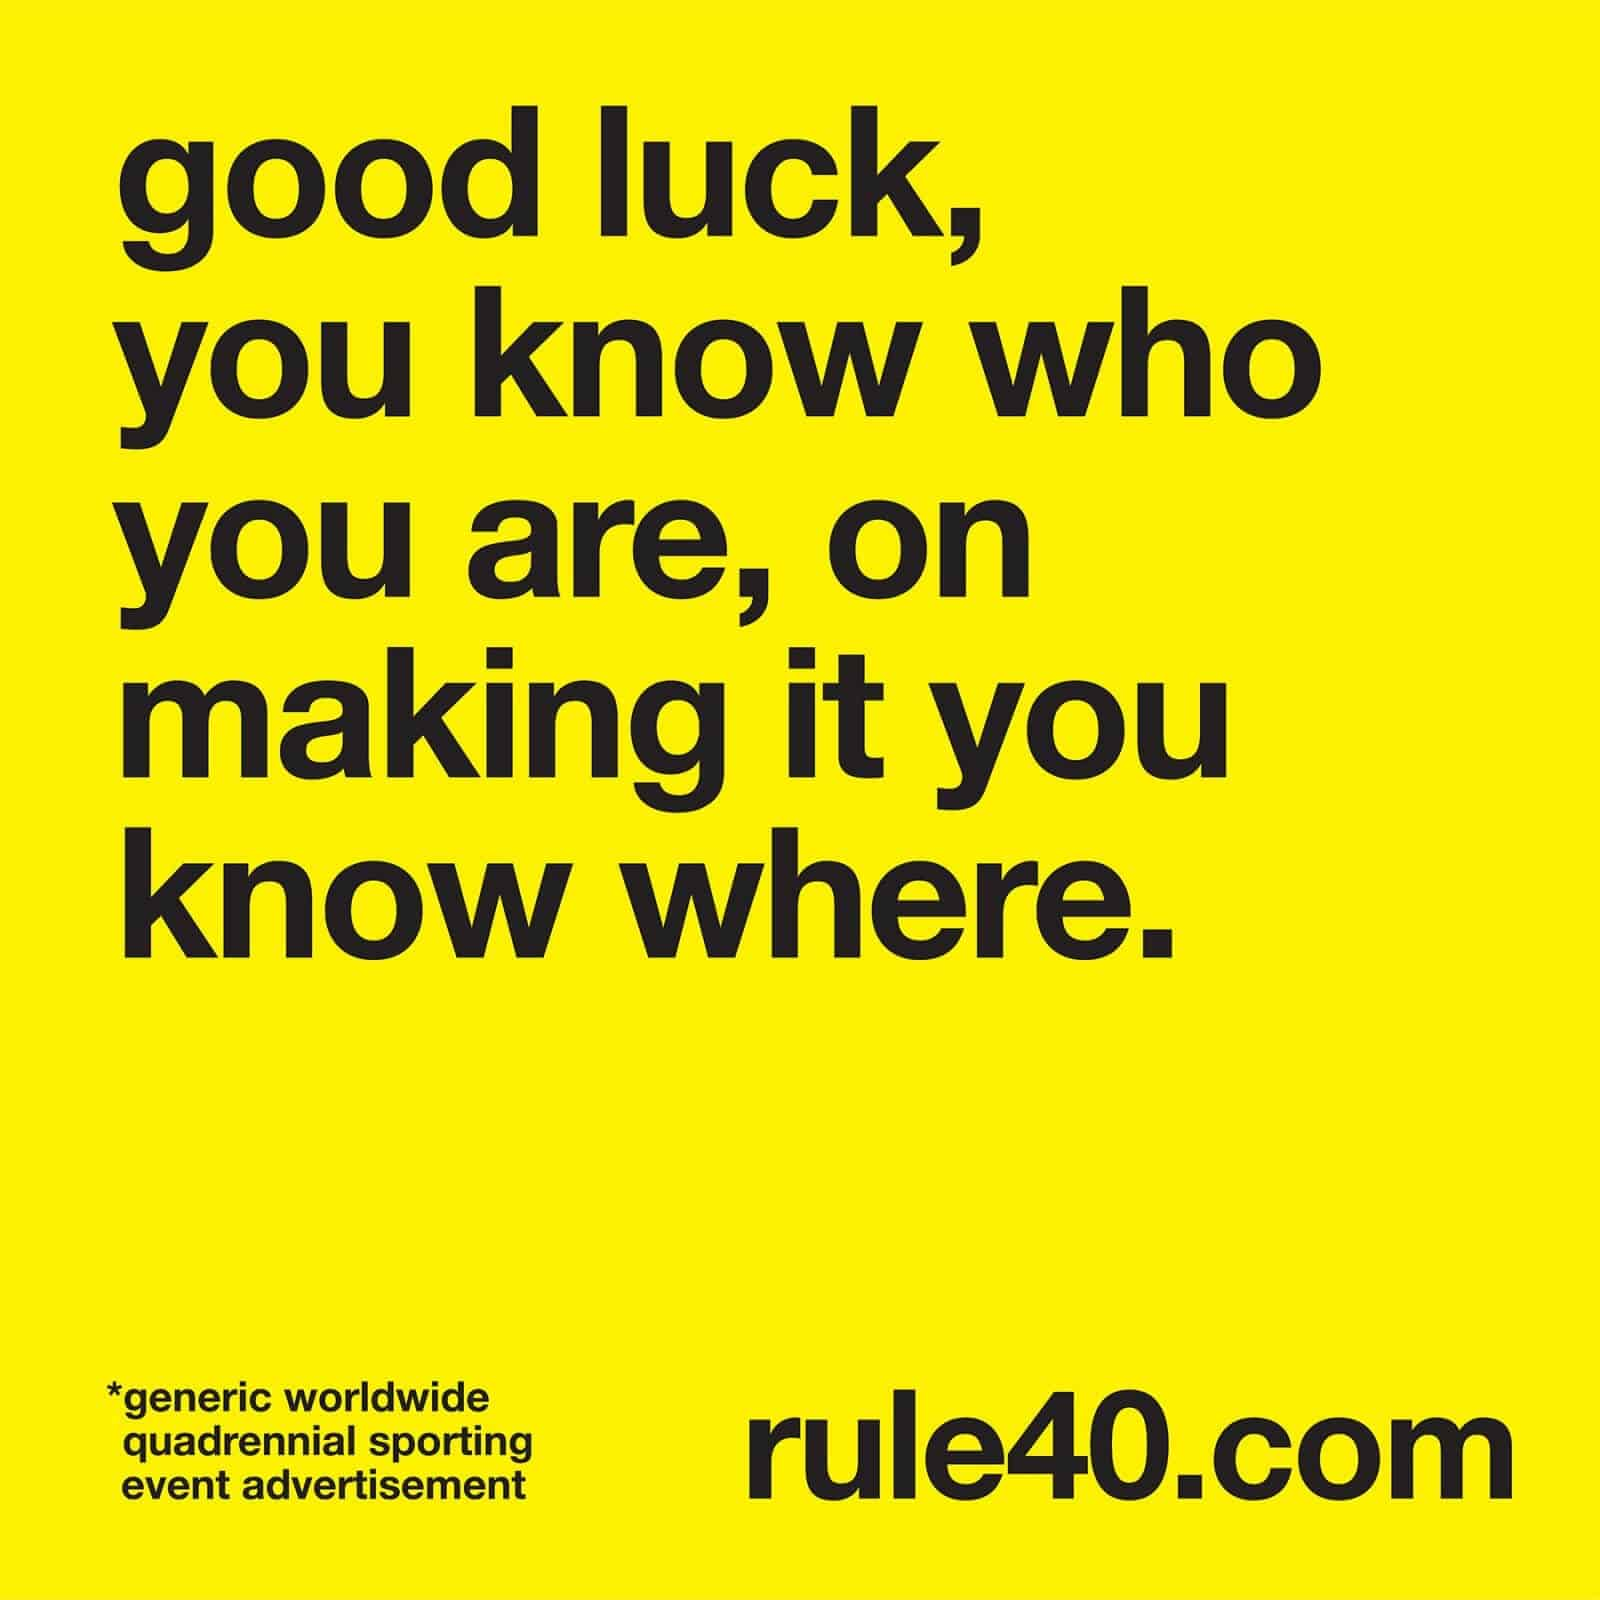 RULE 40 restrictions for businesses #theeventthatshallnotbenamed